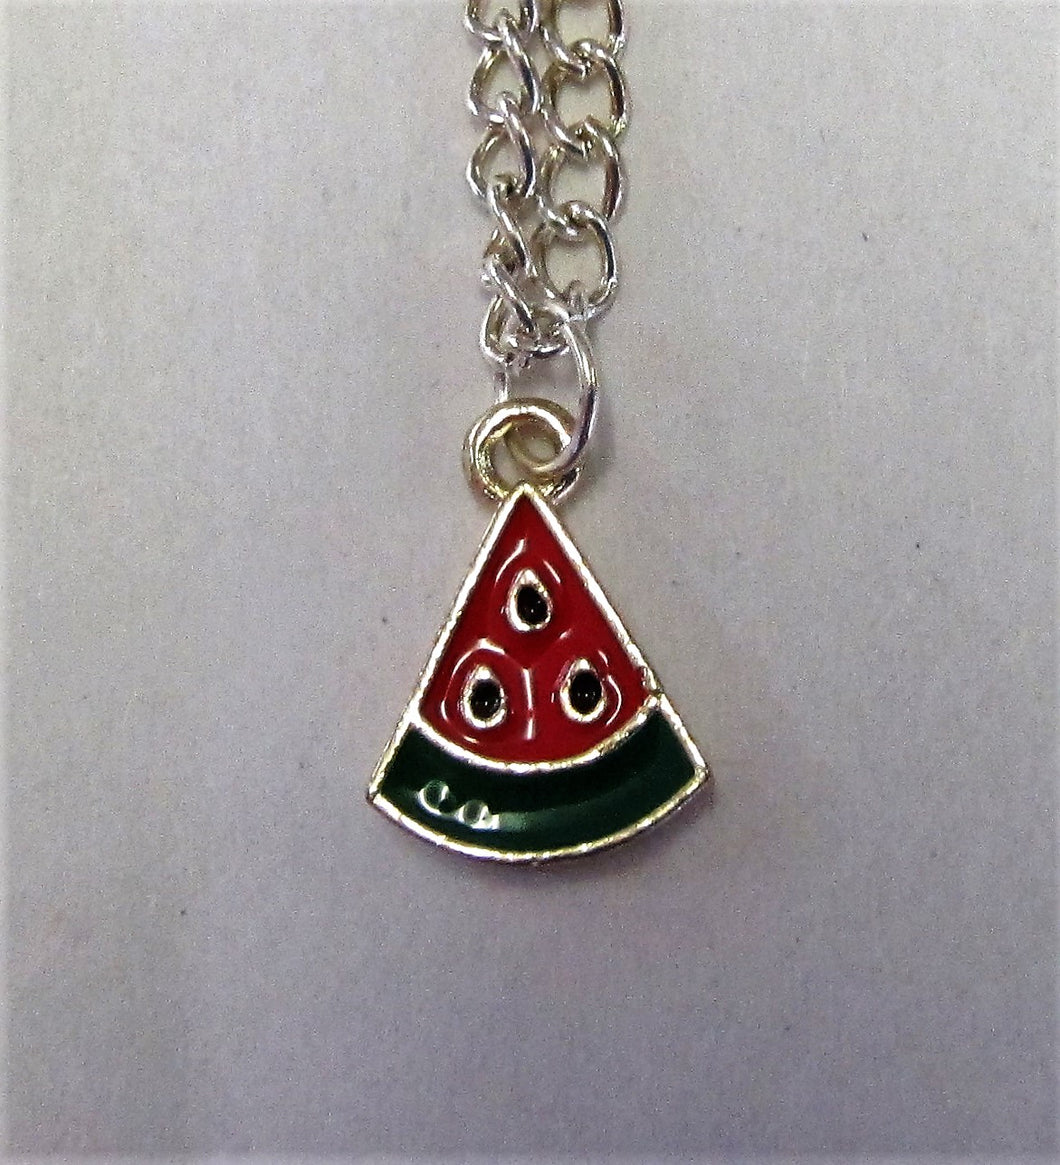 Watermelon pendent on sterling silver necklace